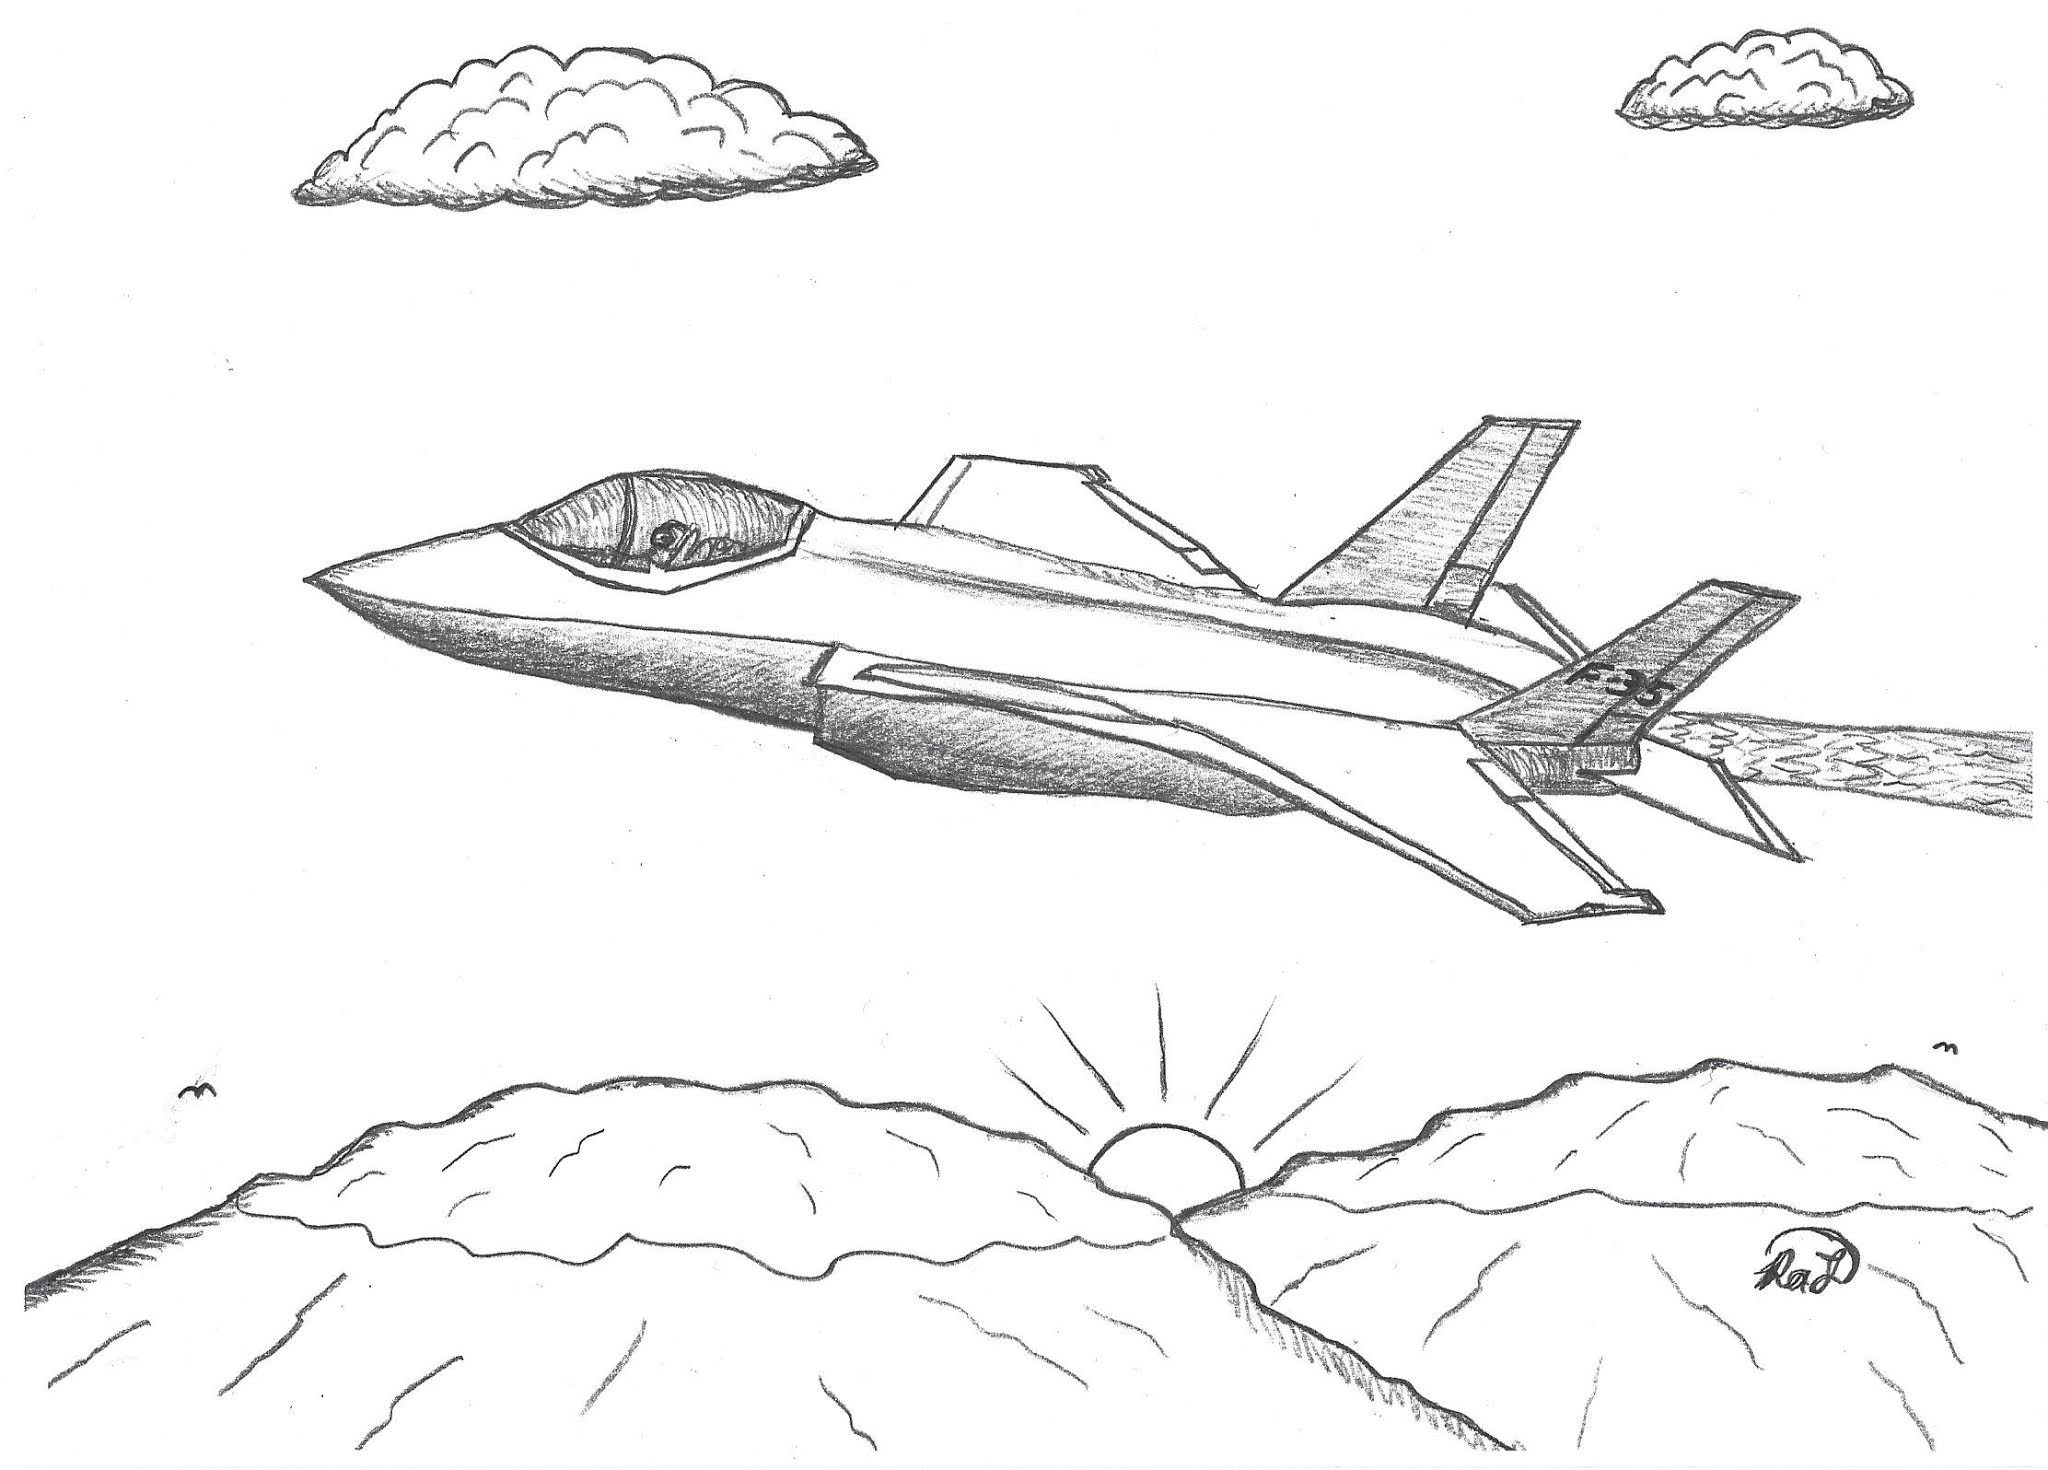 f 22 raptor coloring pages raptor coloring pages for anyone that could use one raptor f coloring 22 pages